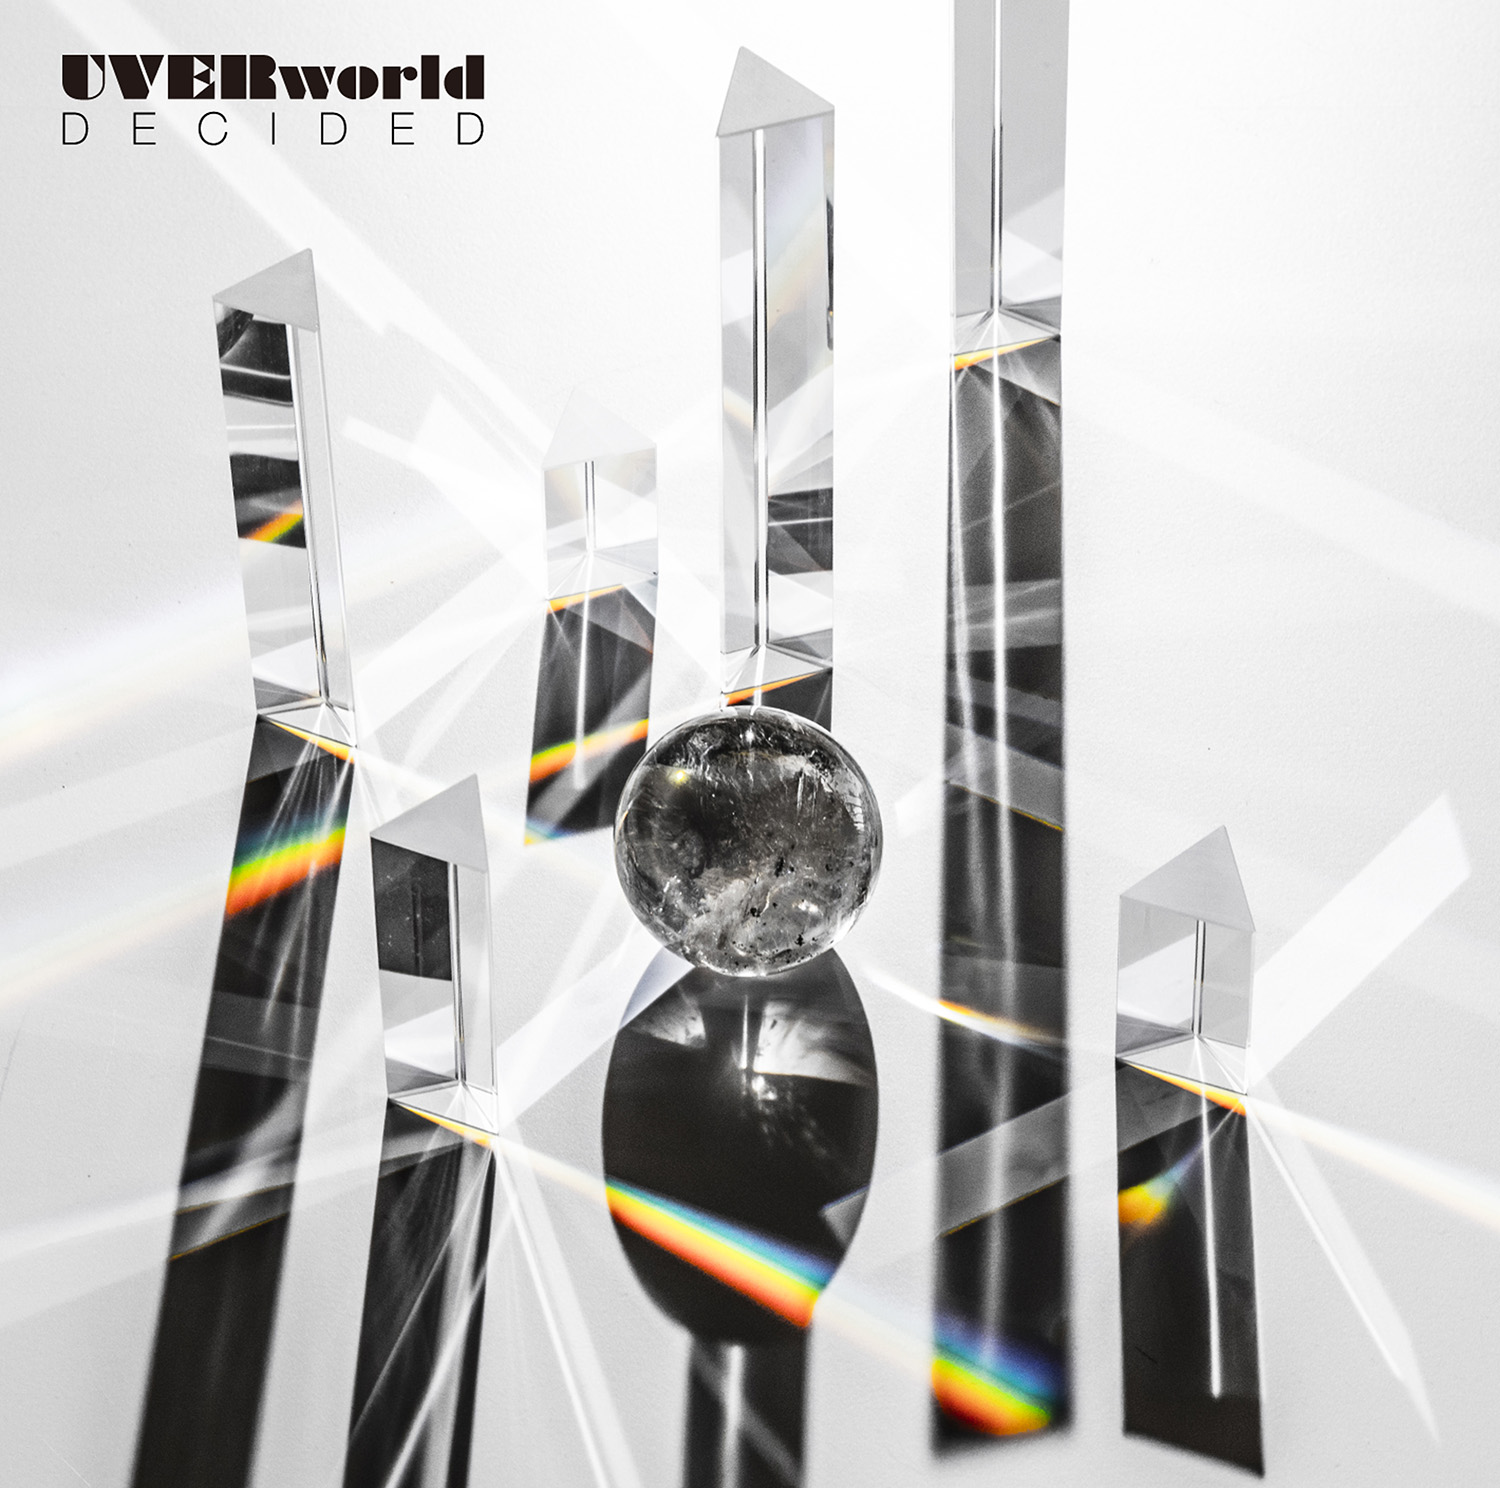 UVERworld「DECIDED」JK写(初回盤)